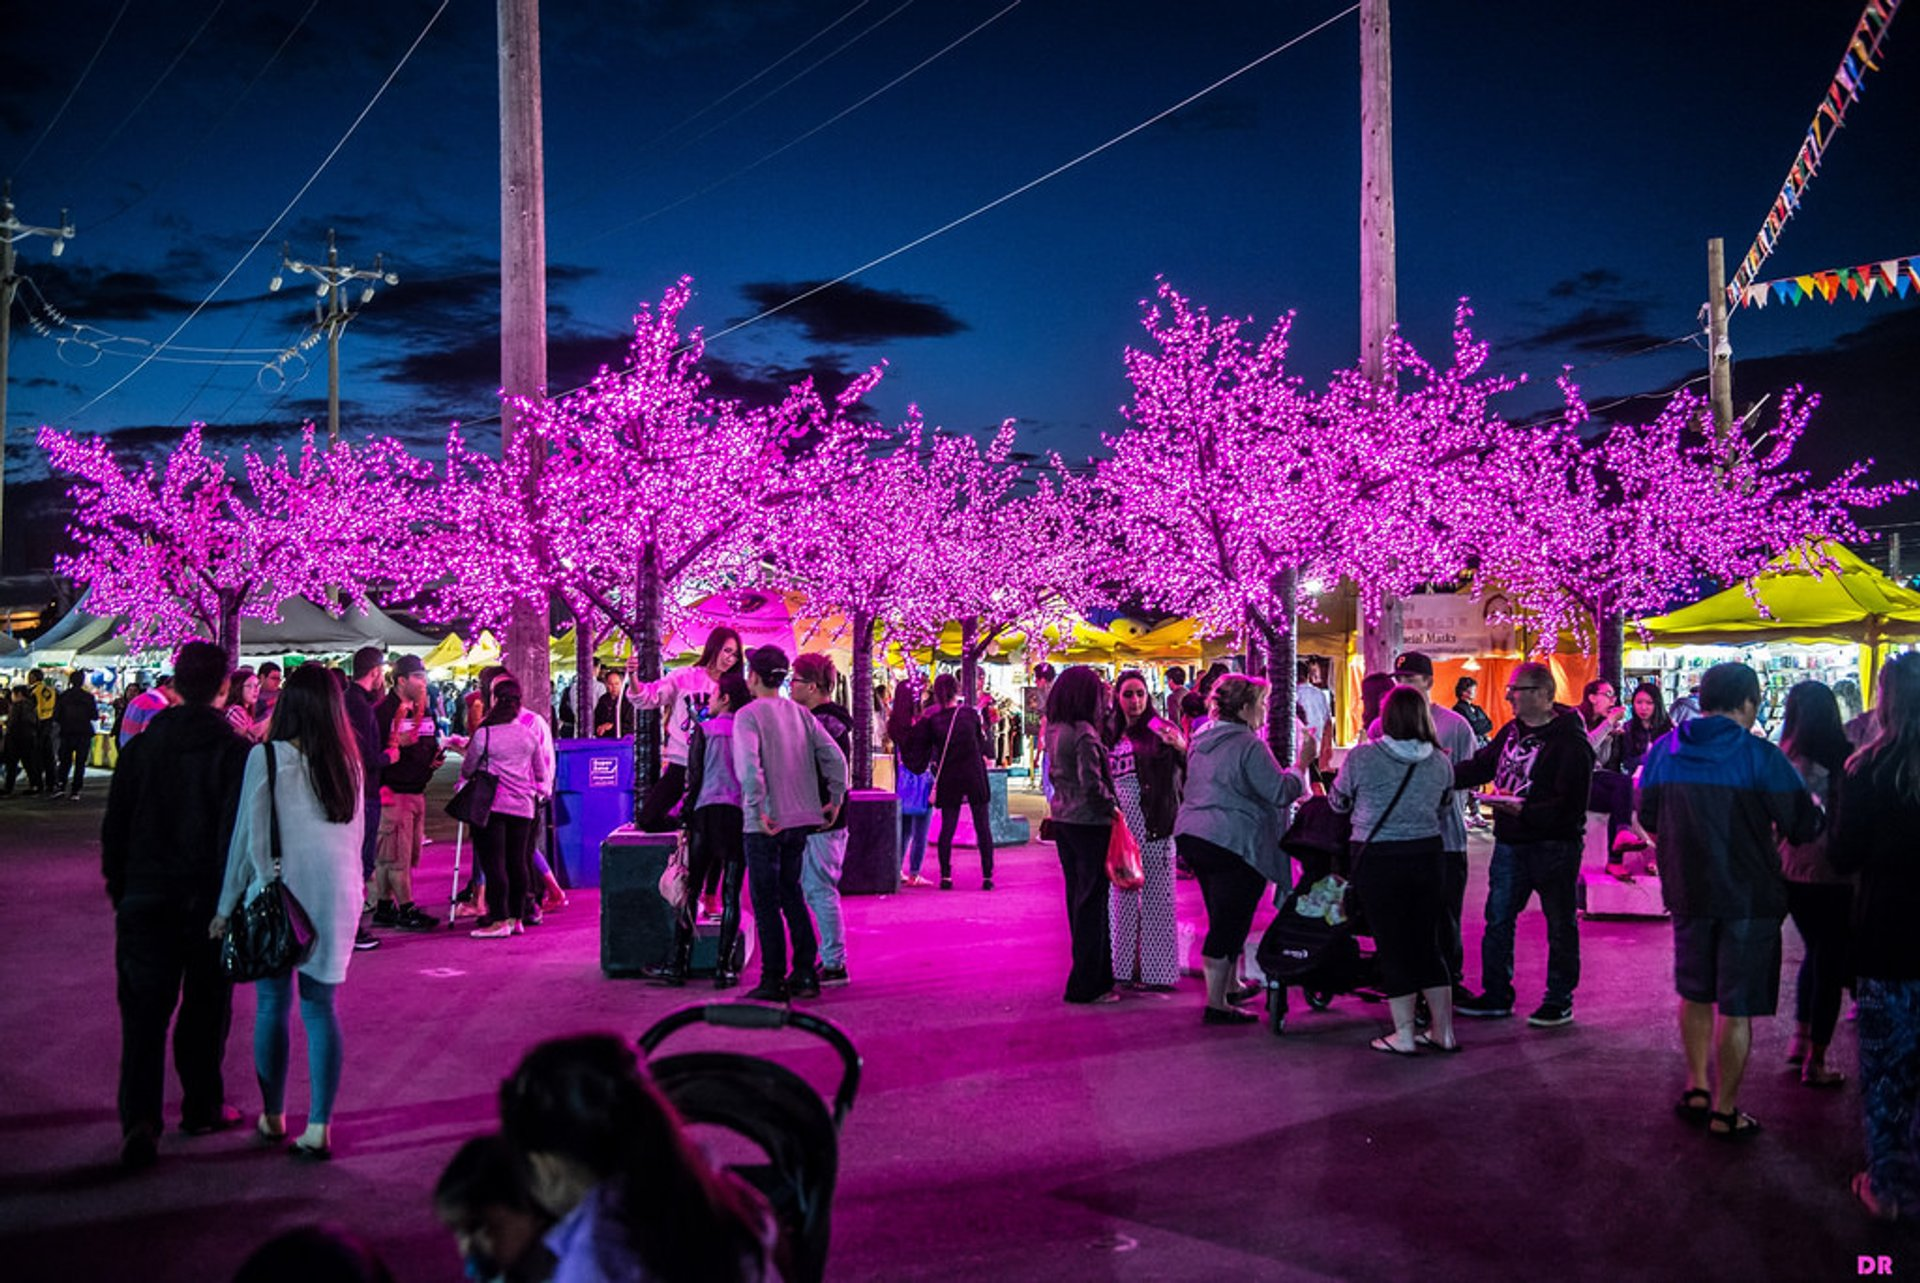 Night Markets in Vancouver 2020 - Best Time